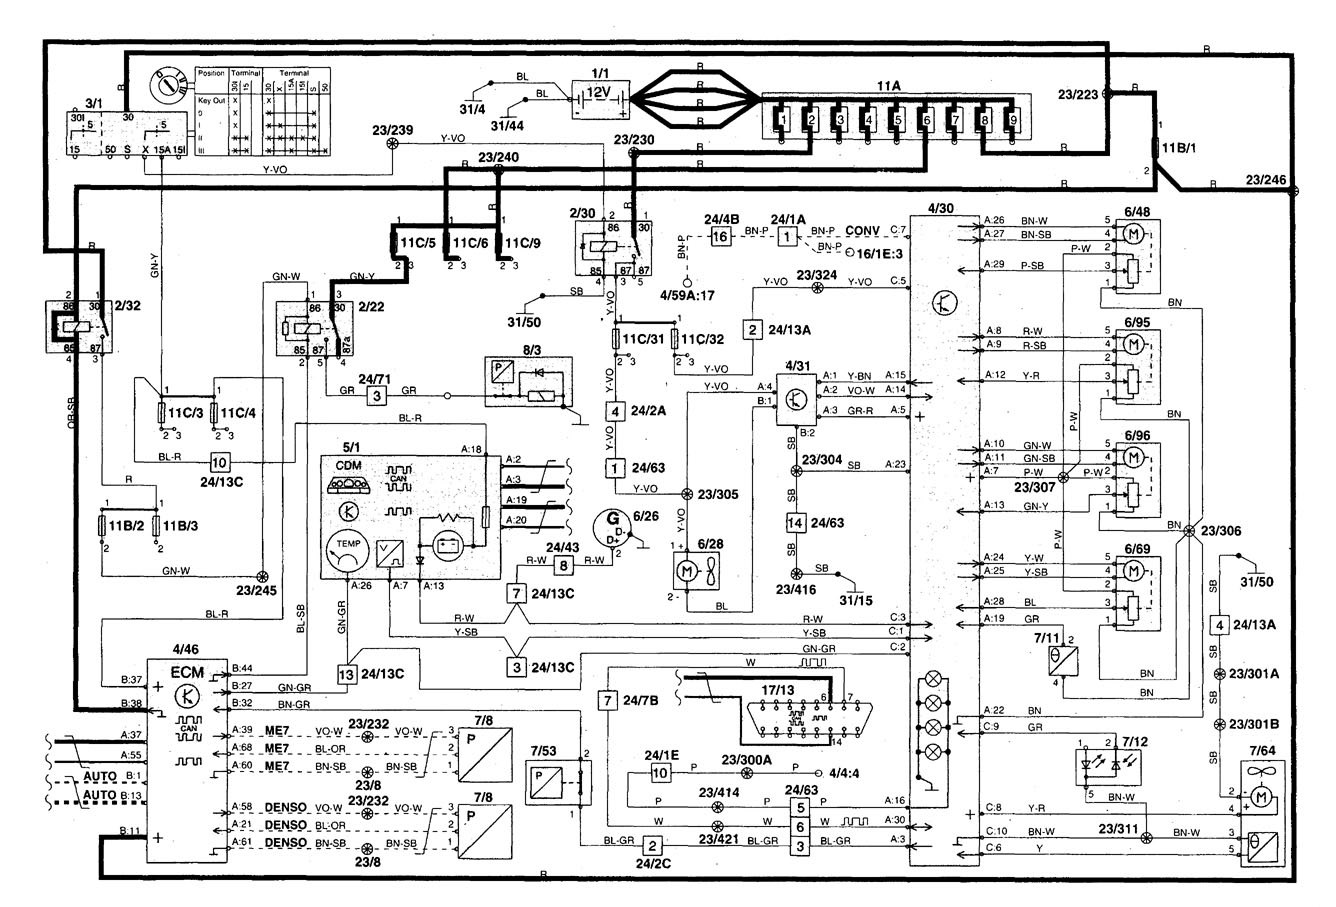 Volvo V70 1998 1999 Wiring Diagrams Hvac Controls Carknowledge Diagram For Part 1